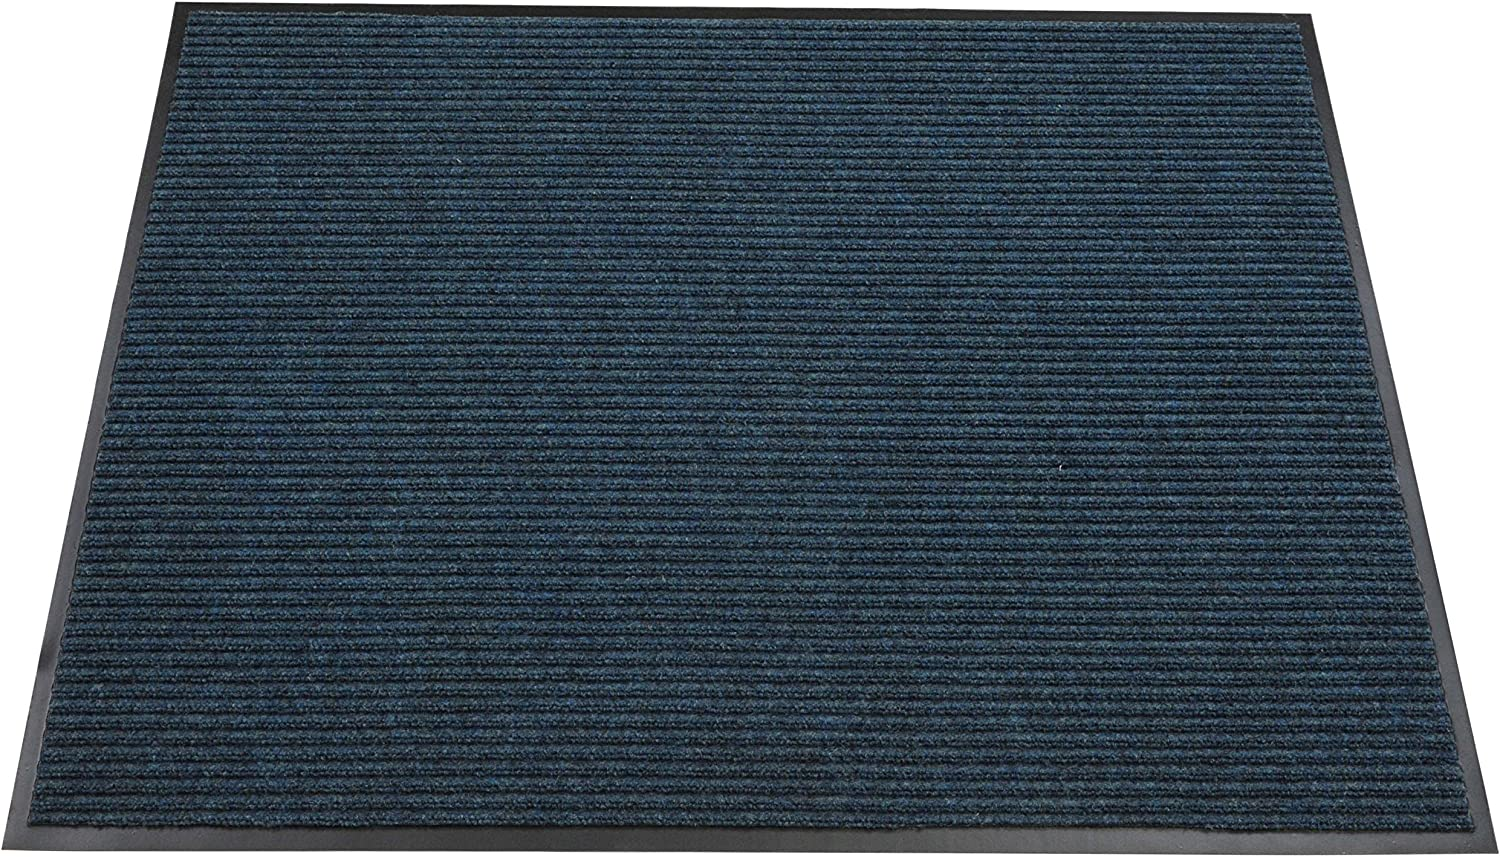 Blue 2/' x 3/' Americo Manufacturing 6201023 Ridge Runner Polypropylene Ribbed Surface Indoor//Outdoor Matting and Runners 2 x 3